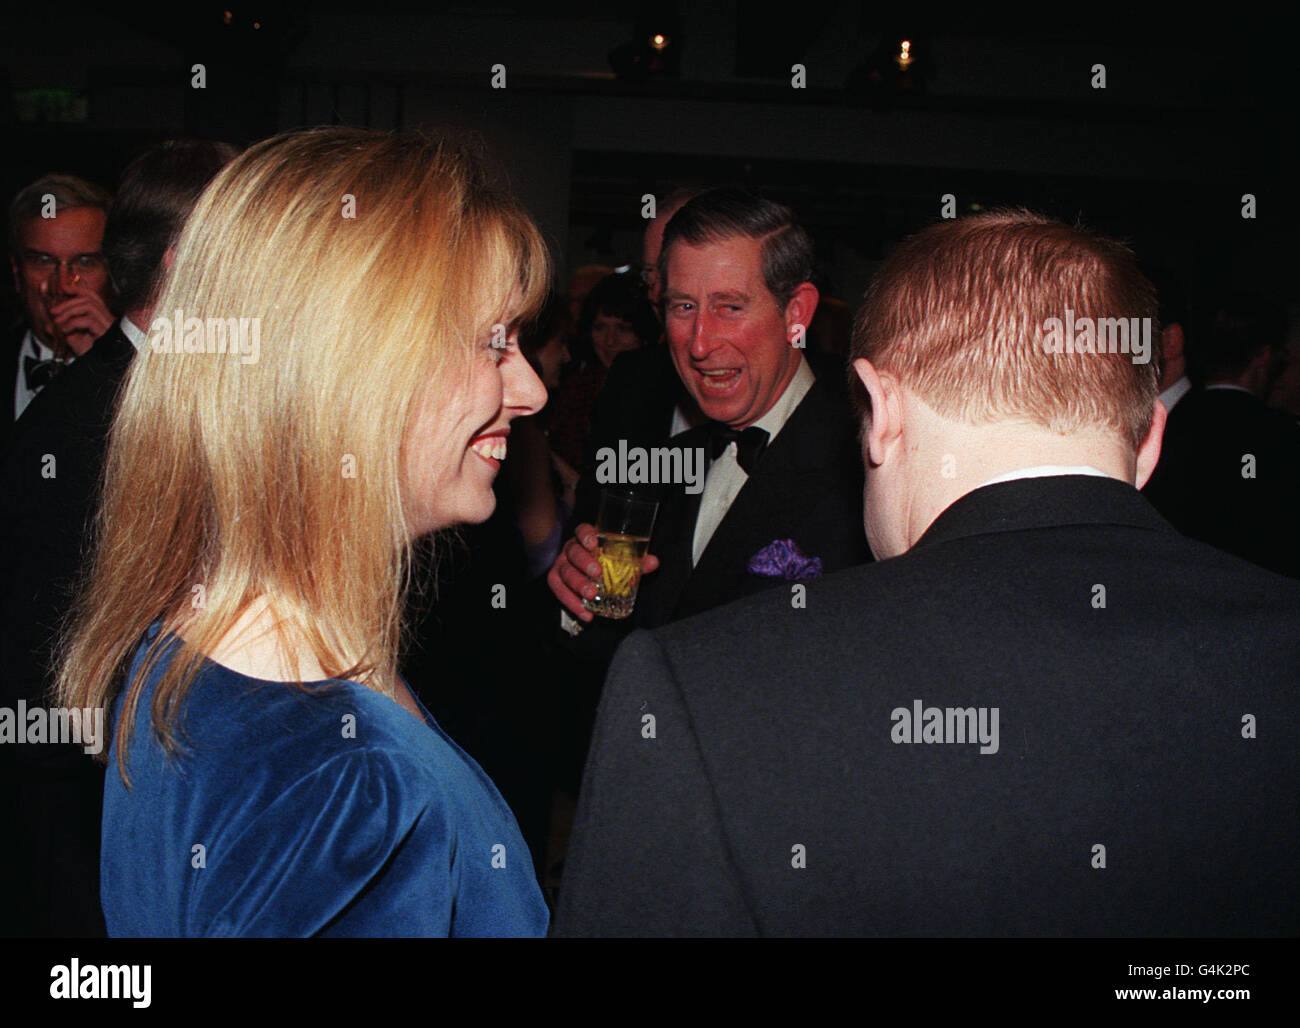 Prince of Wales/Laughing Stock Photo